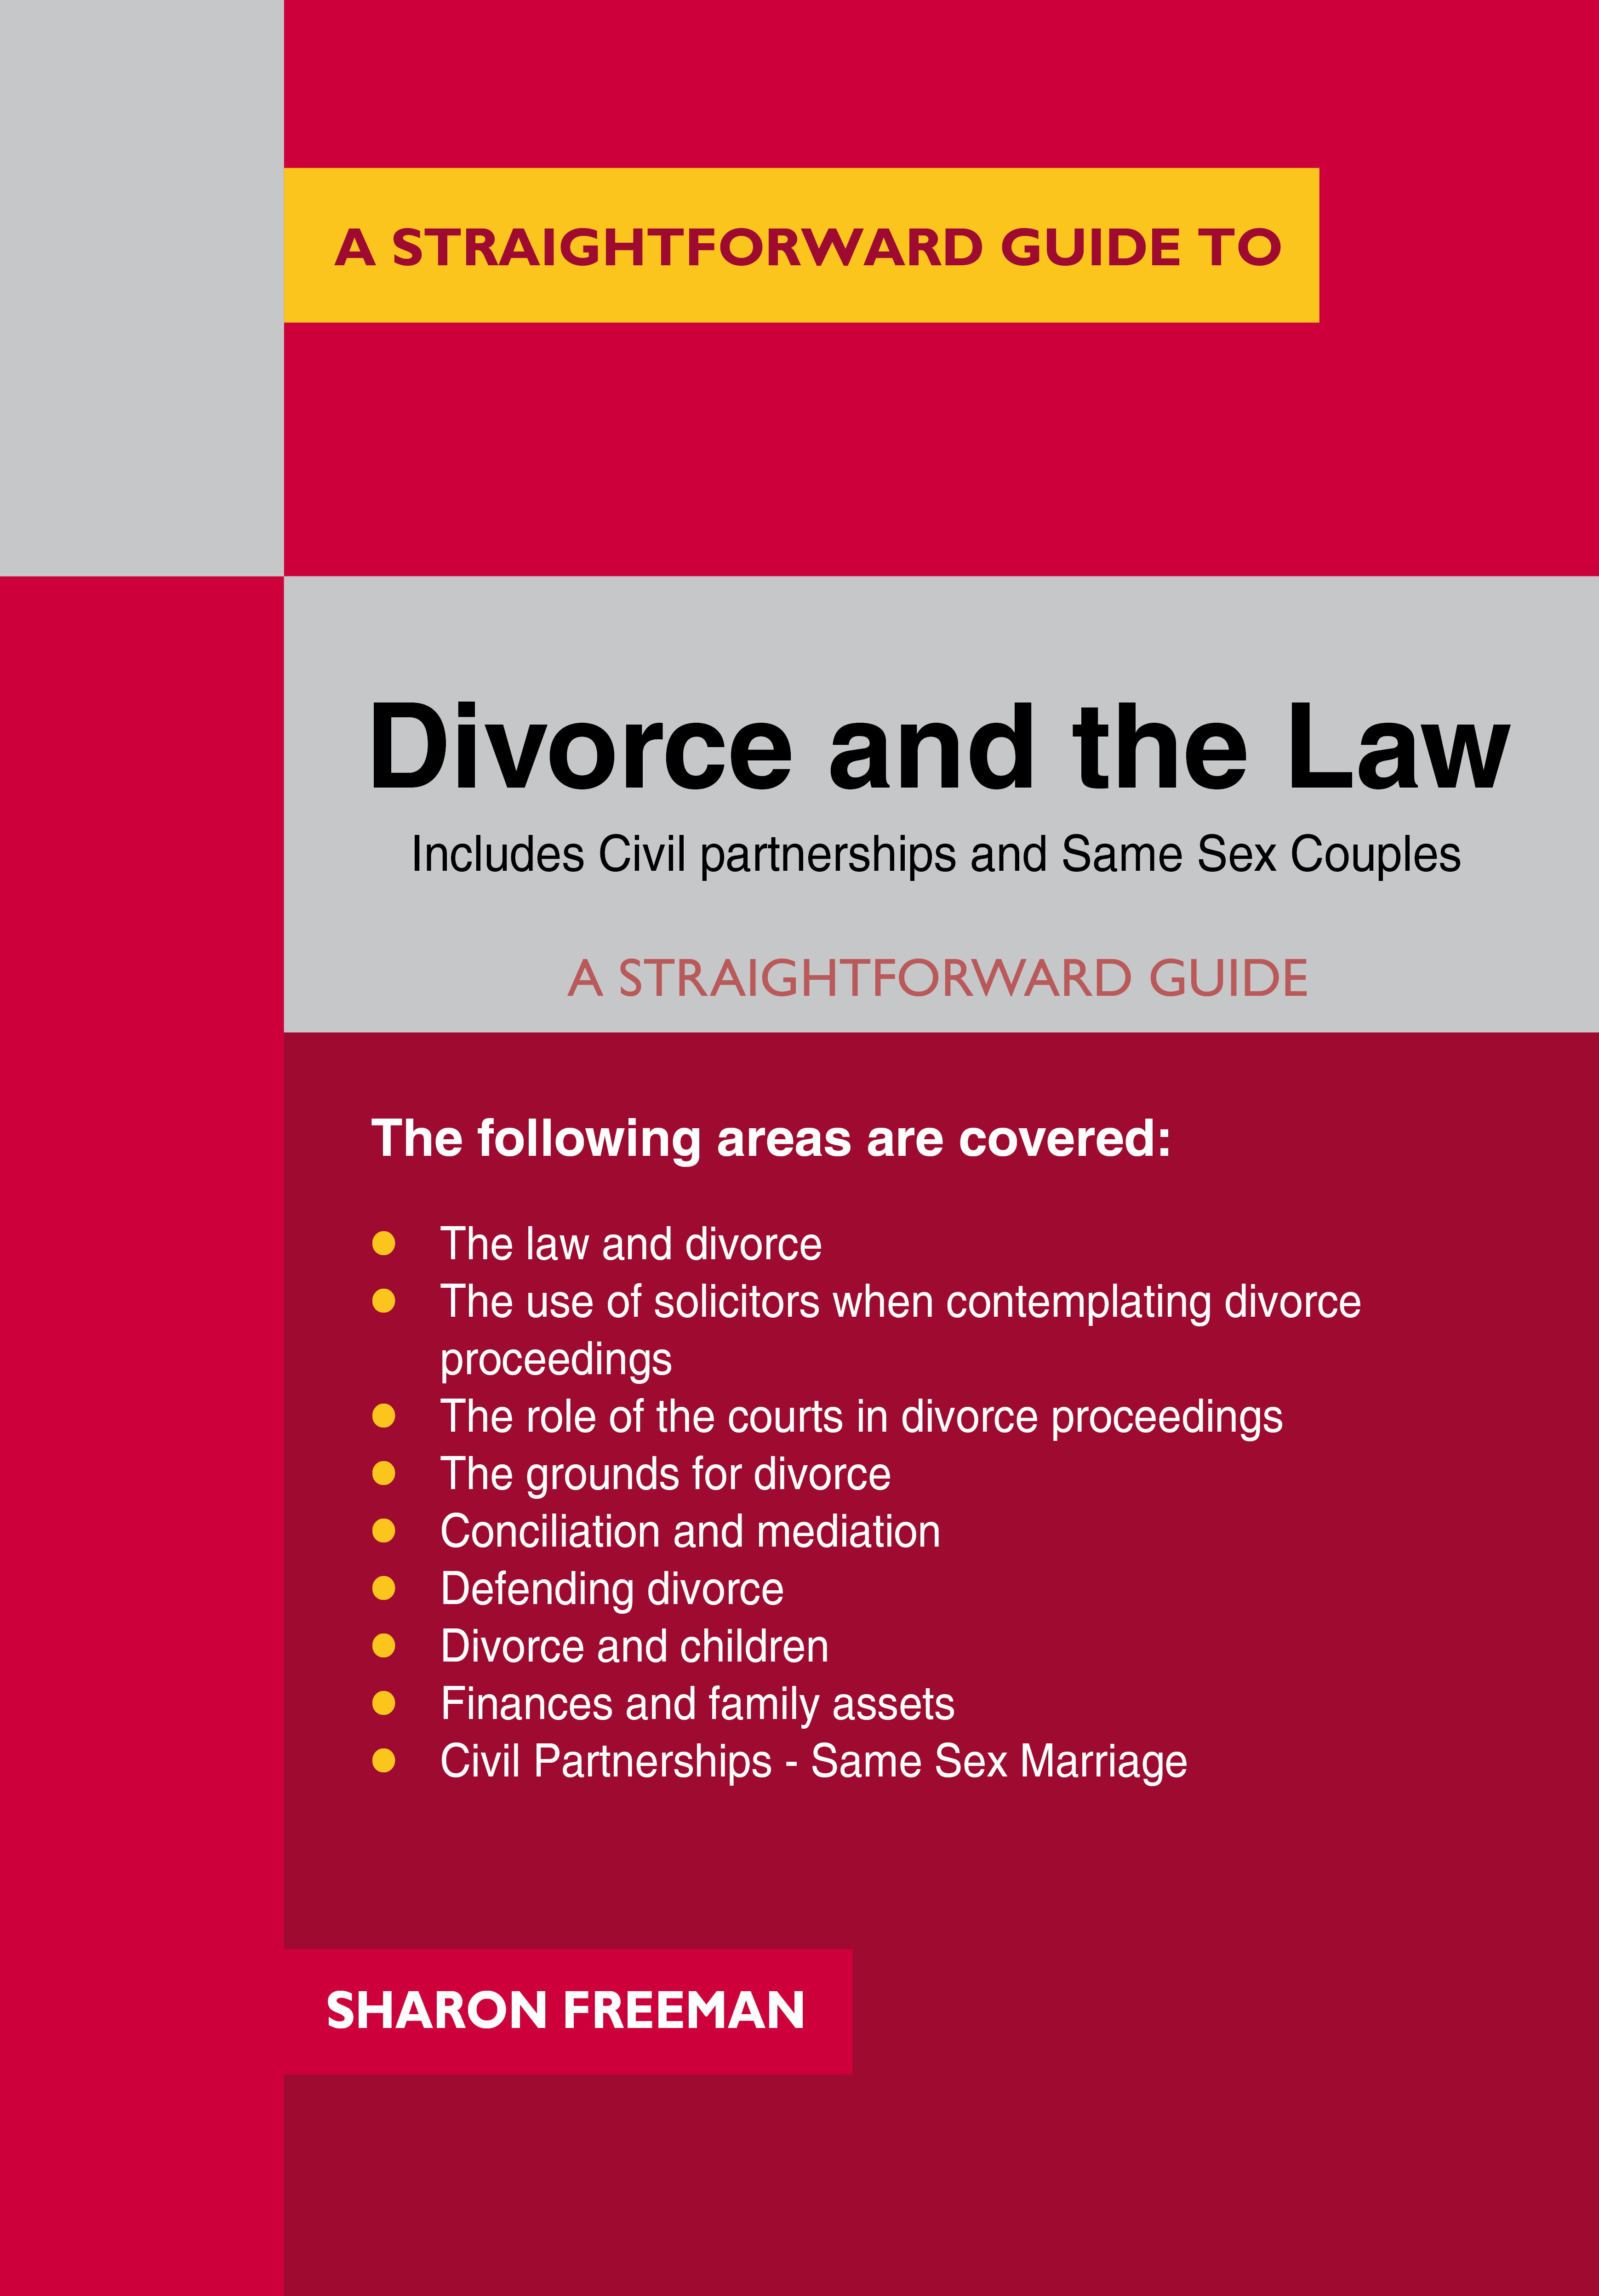 Divorce and the Law cover